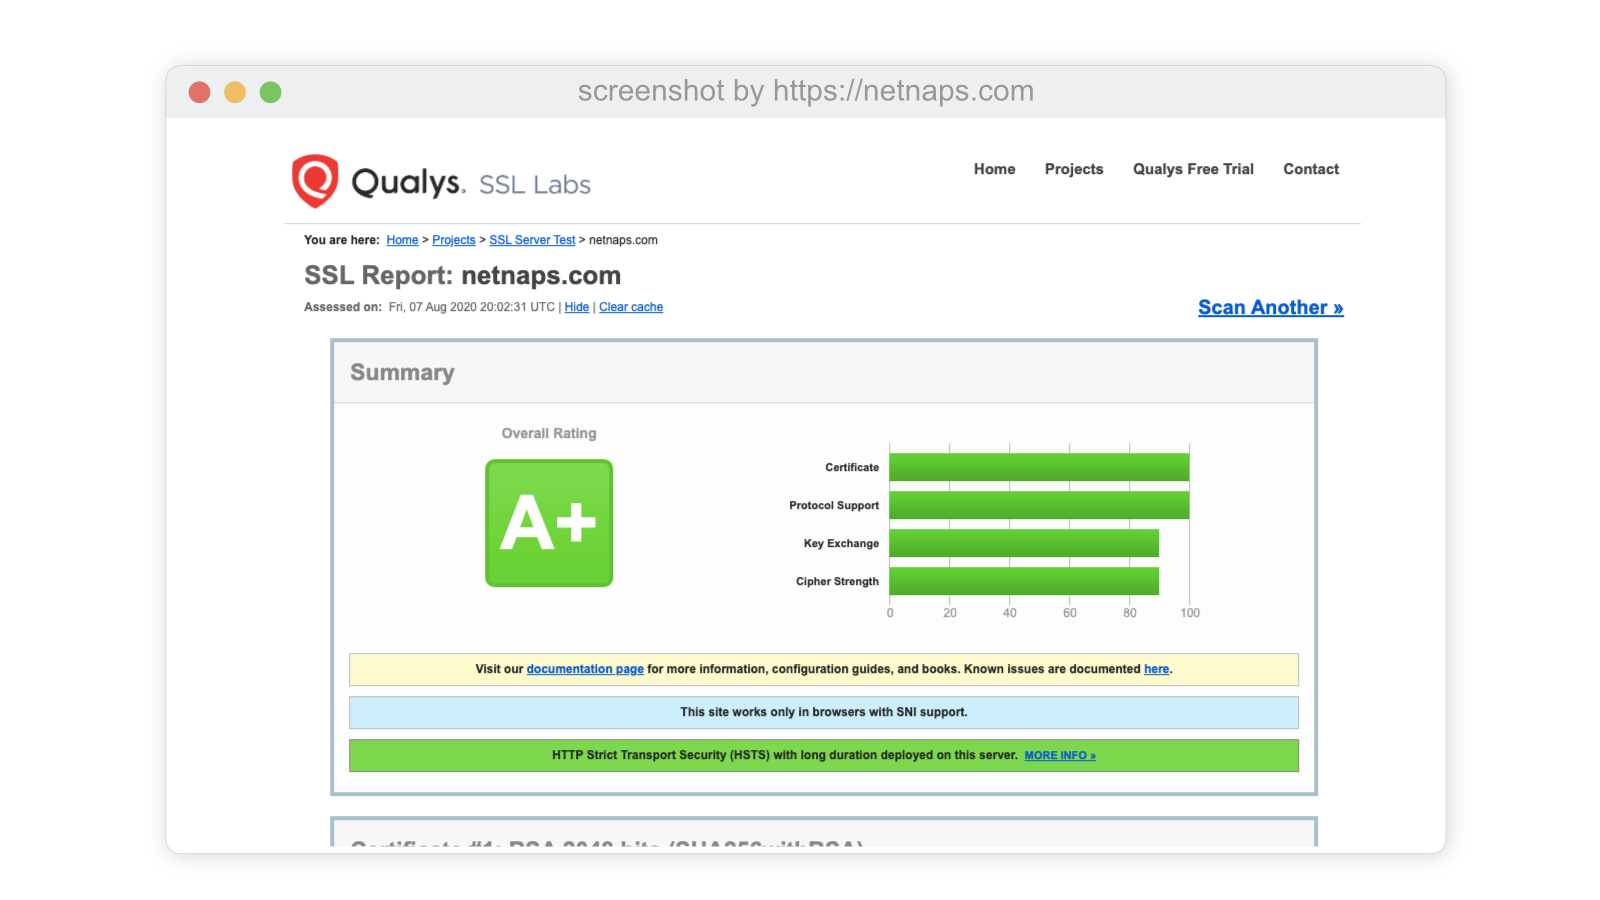 Getting A+ Rating on SSL on a lightsail hosted website